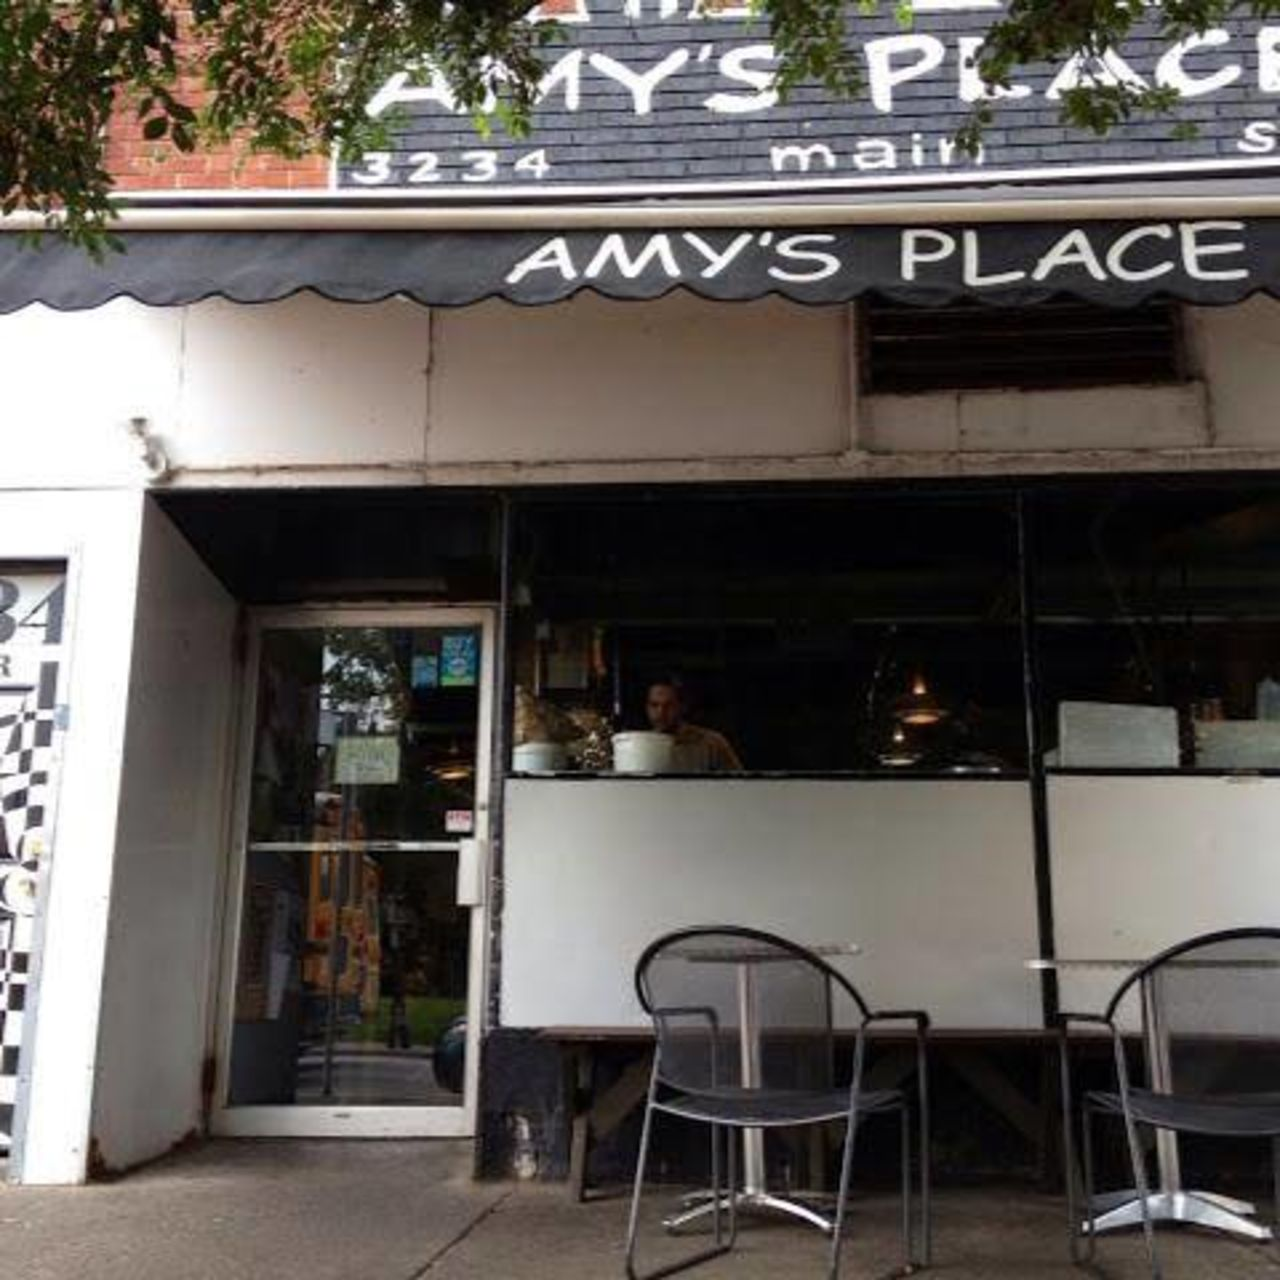 A photo of Amy's Place